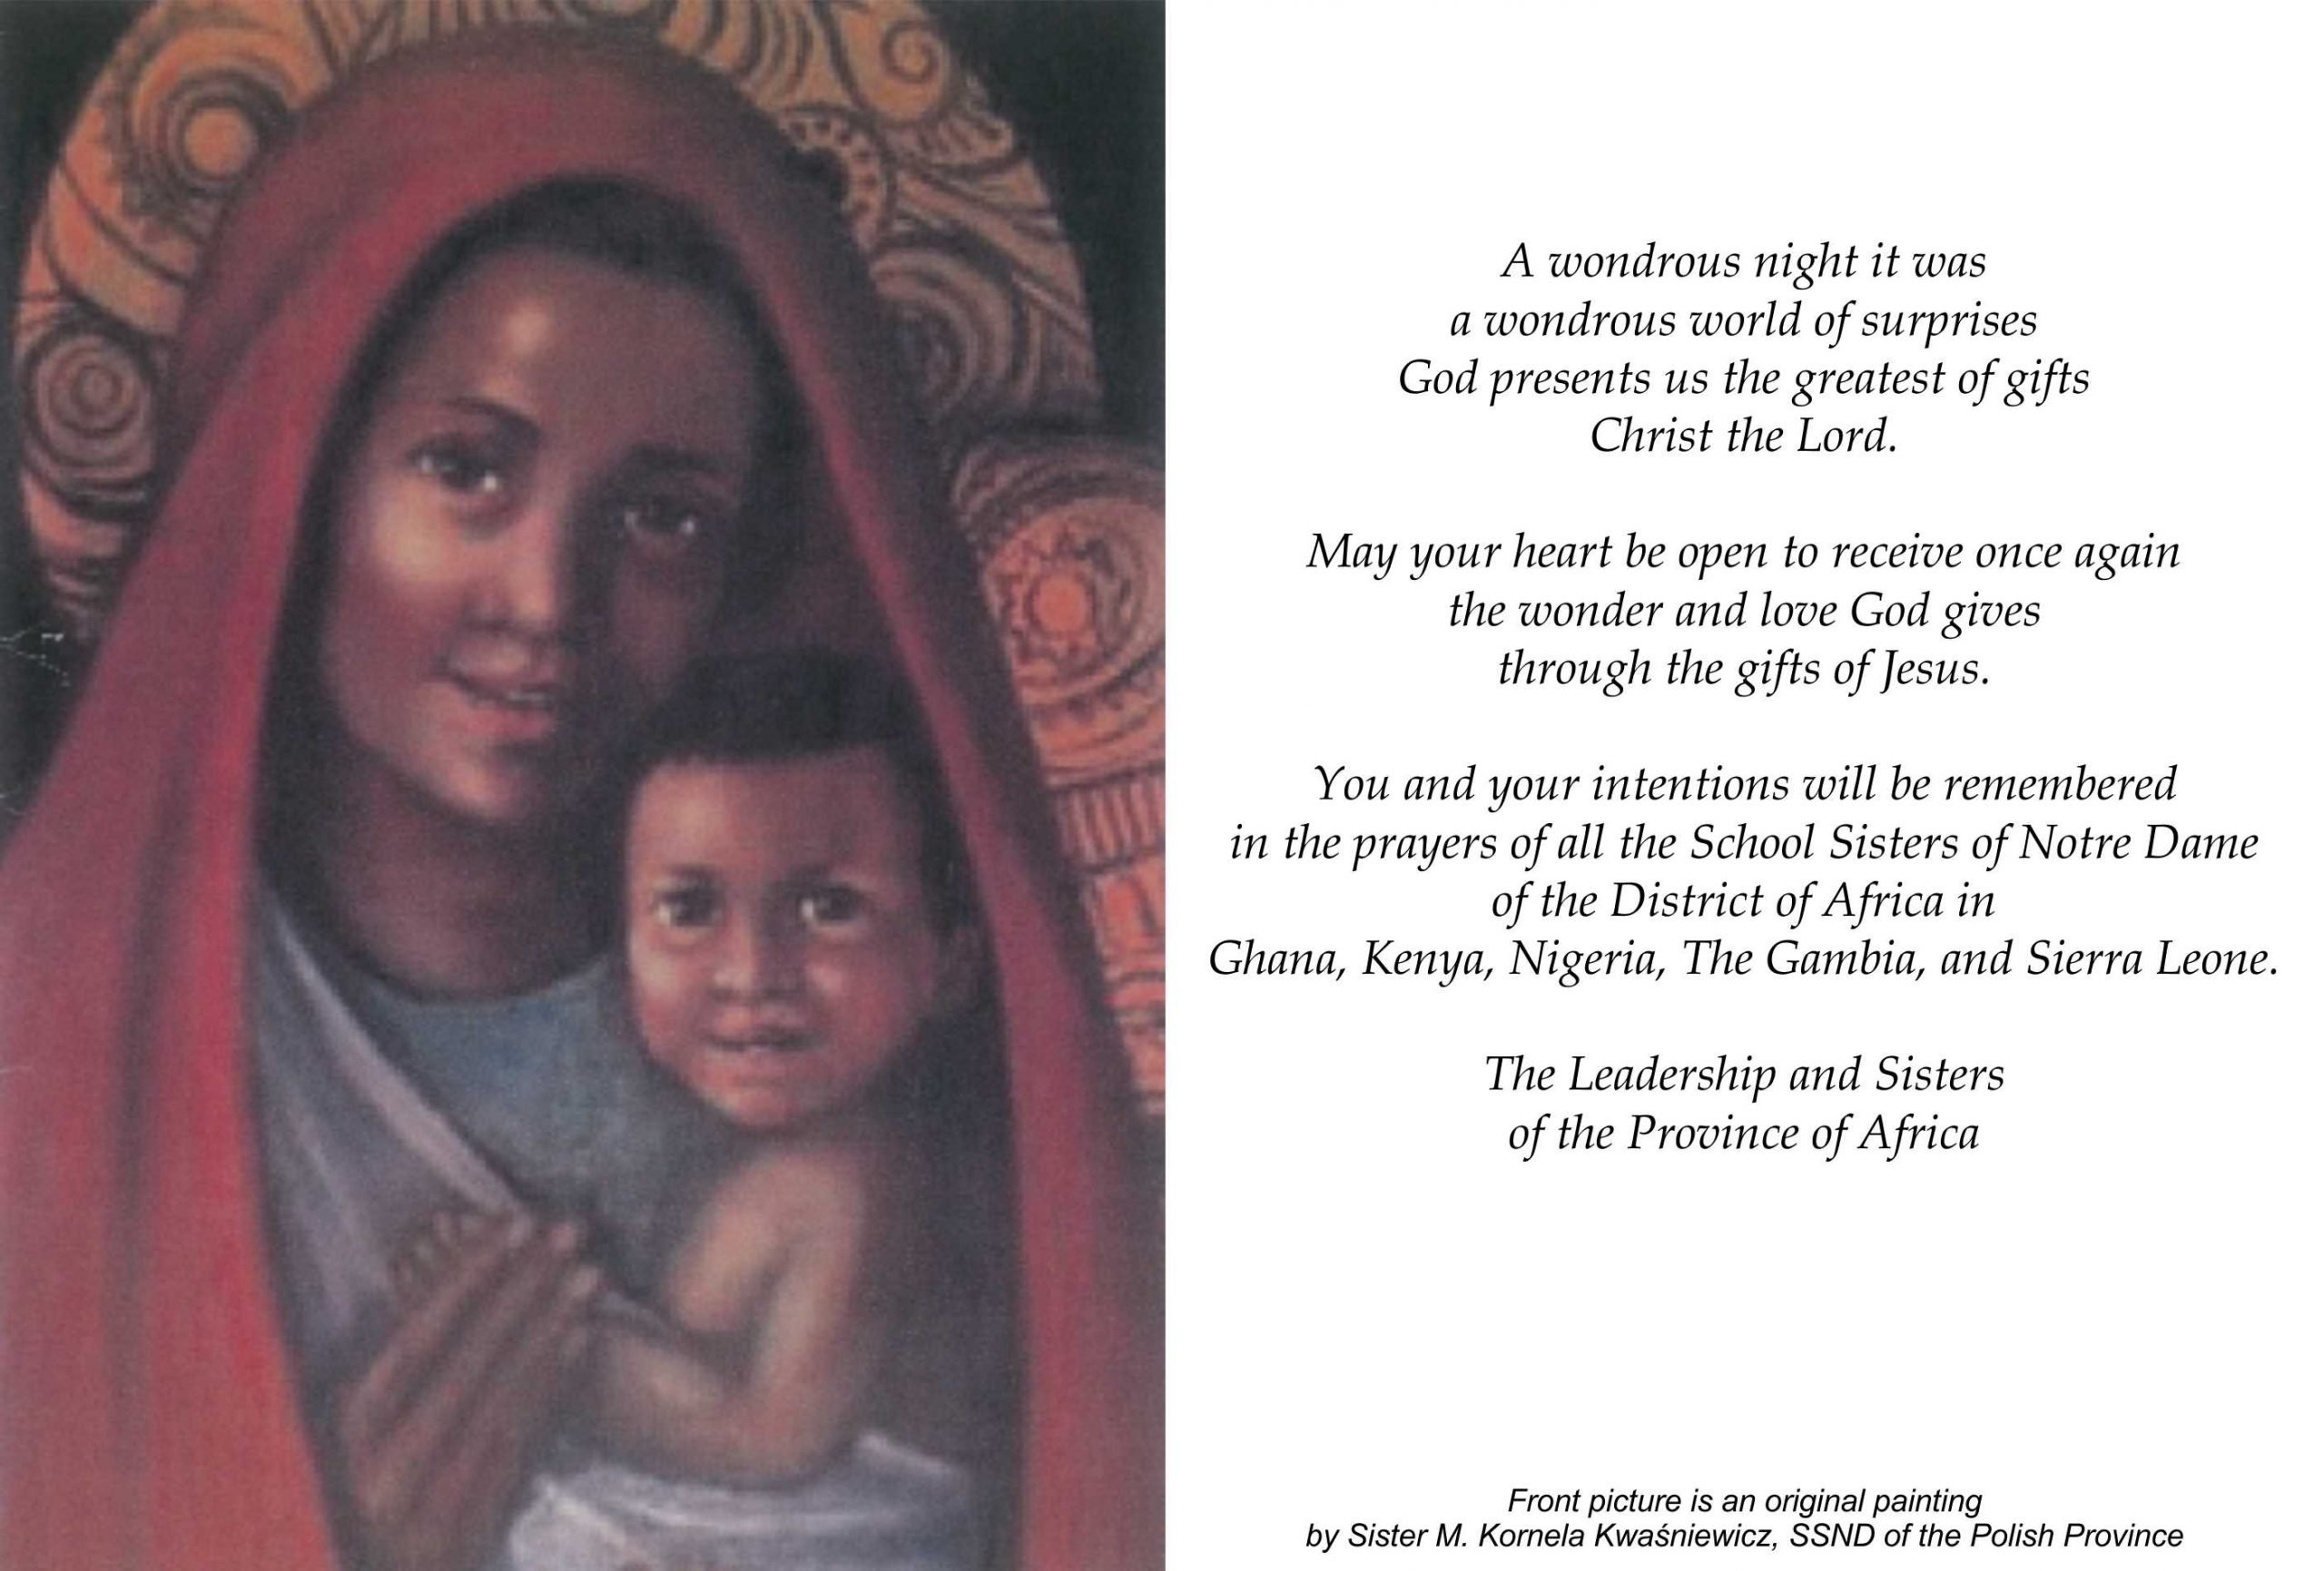 Christmas greeting from the sisters of the Province of Africa.